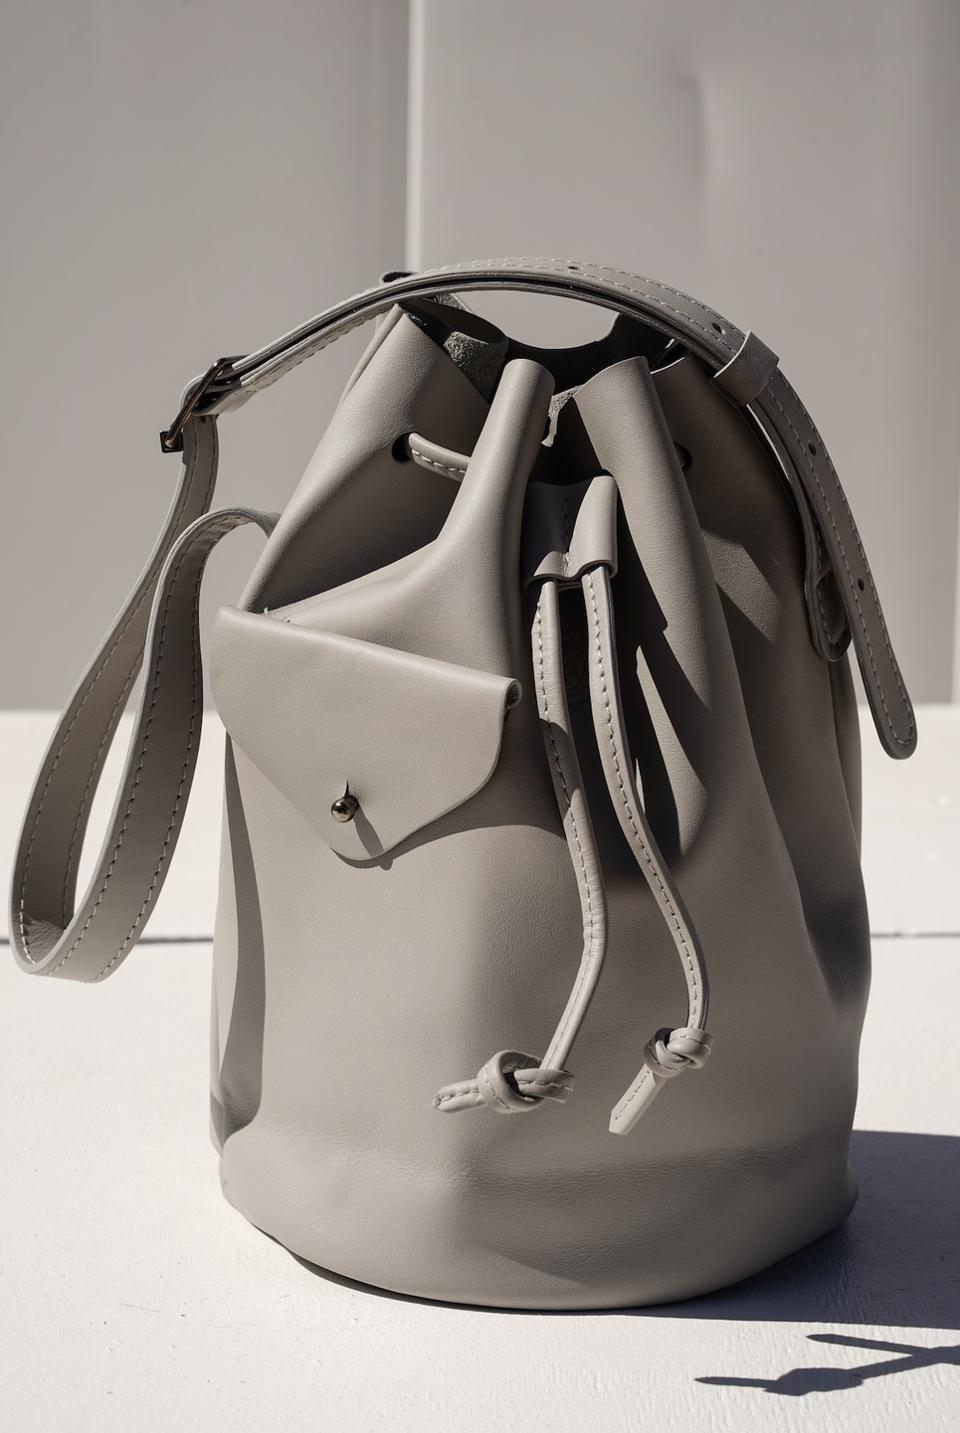 Totem Bag in Cement color with Dark Nickel Hardware